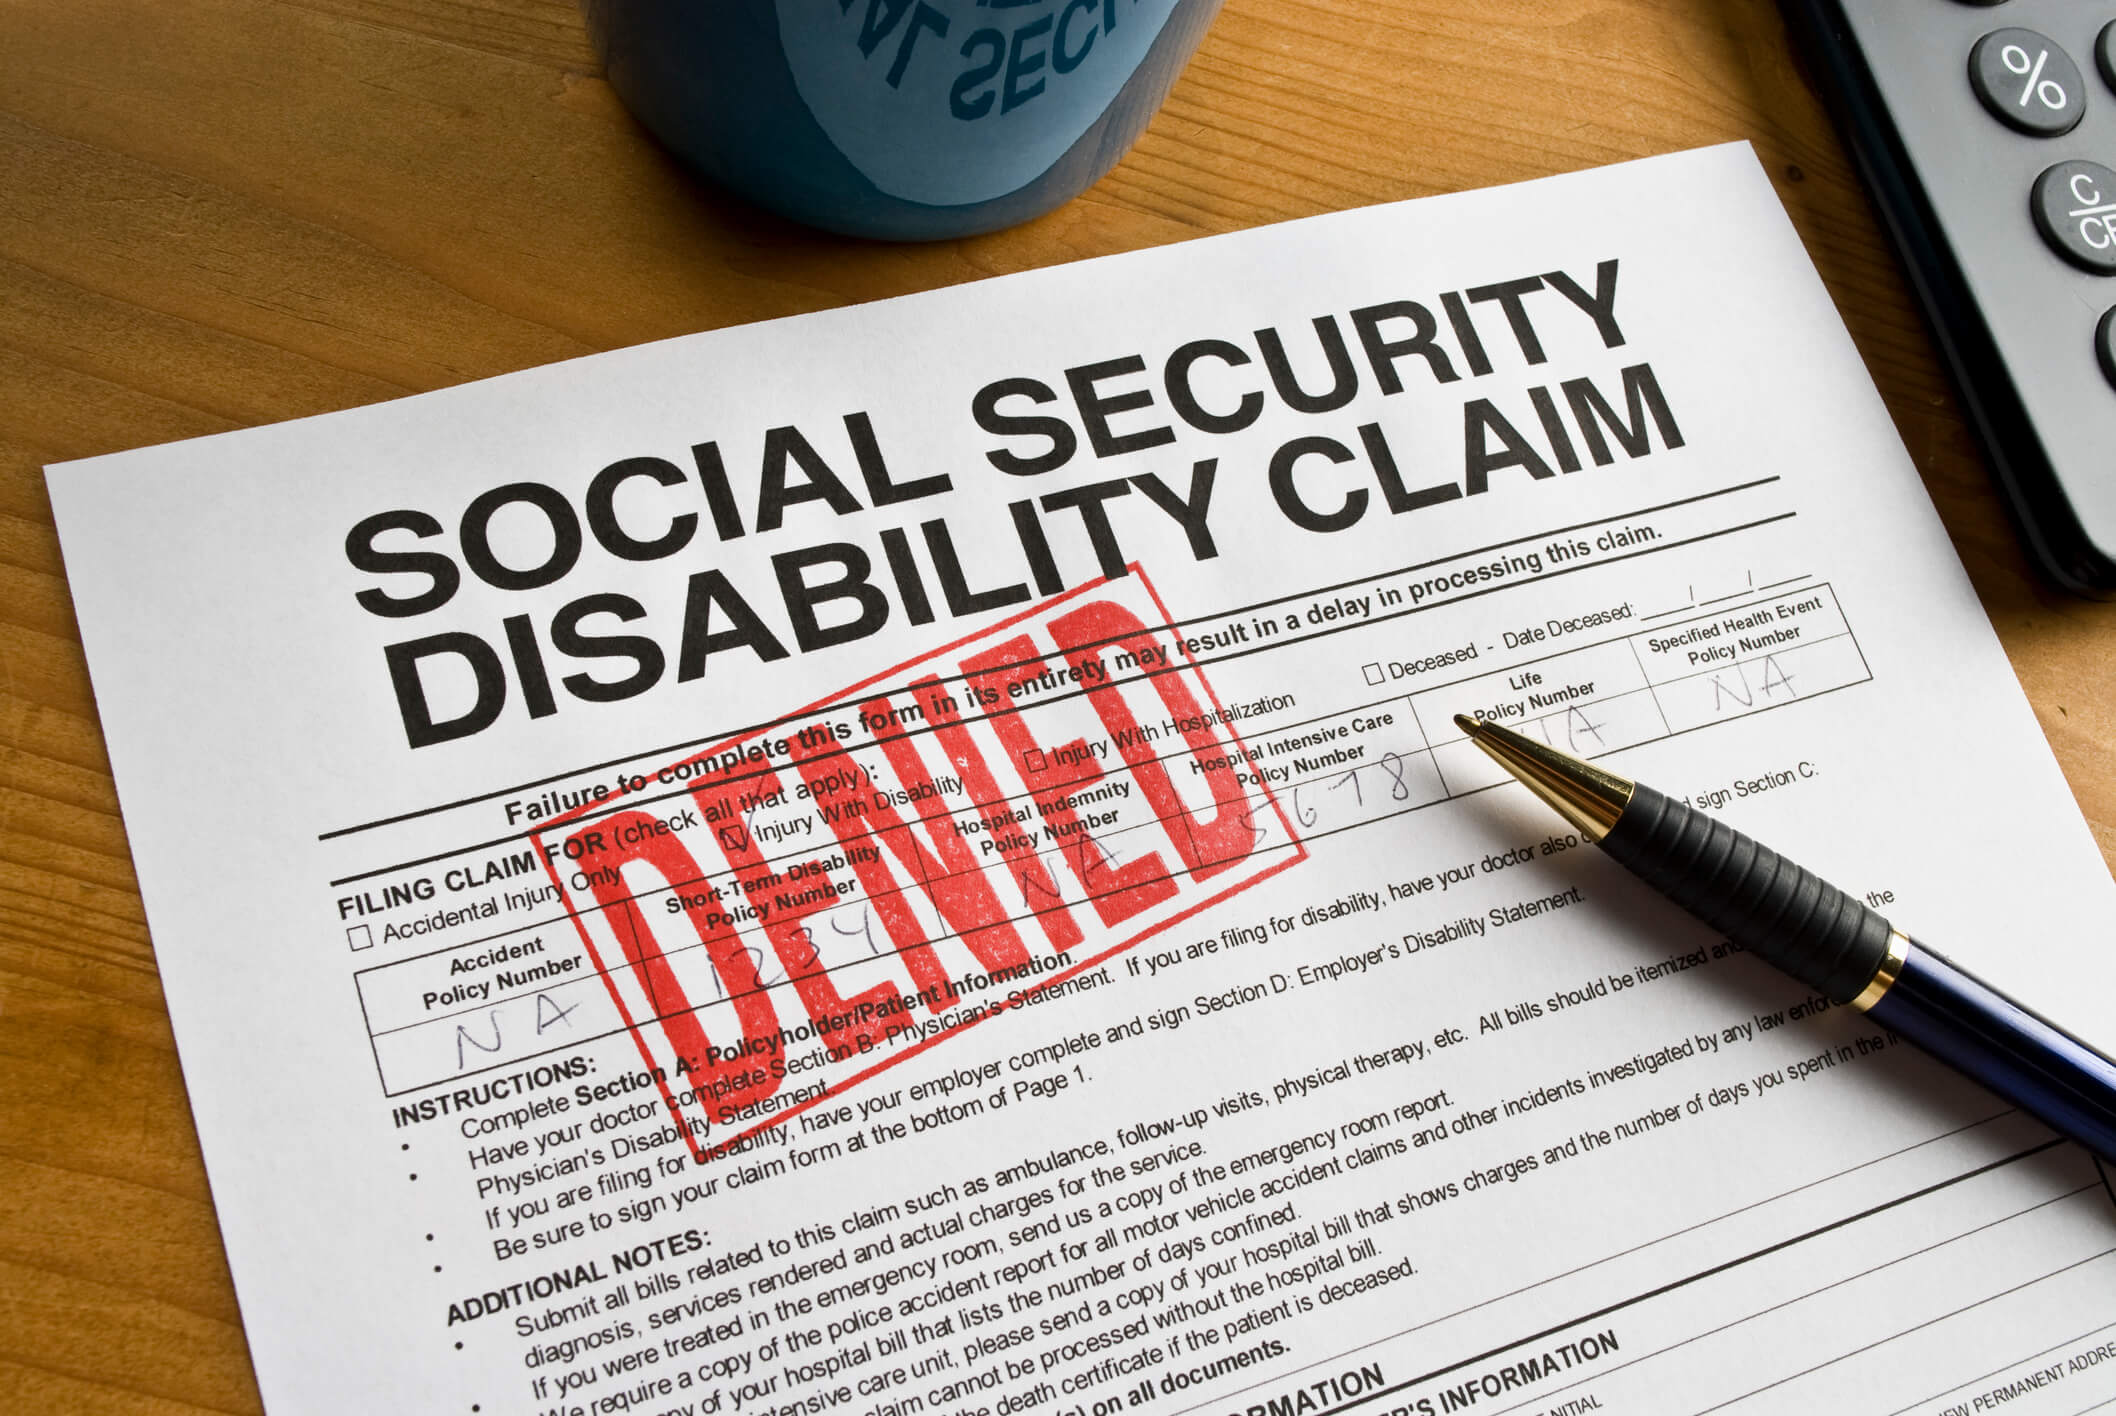 Denied claim of social security disability claim.